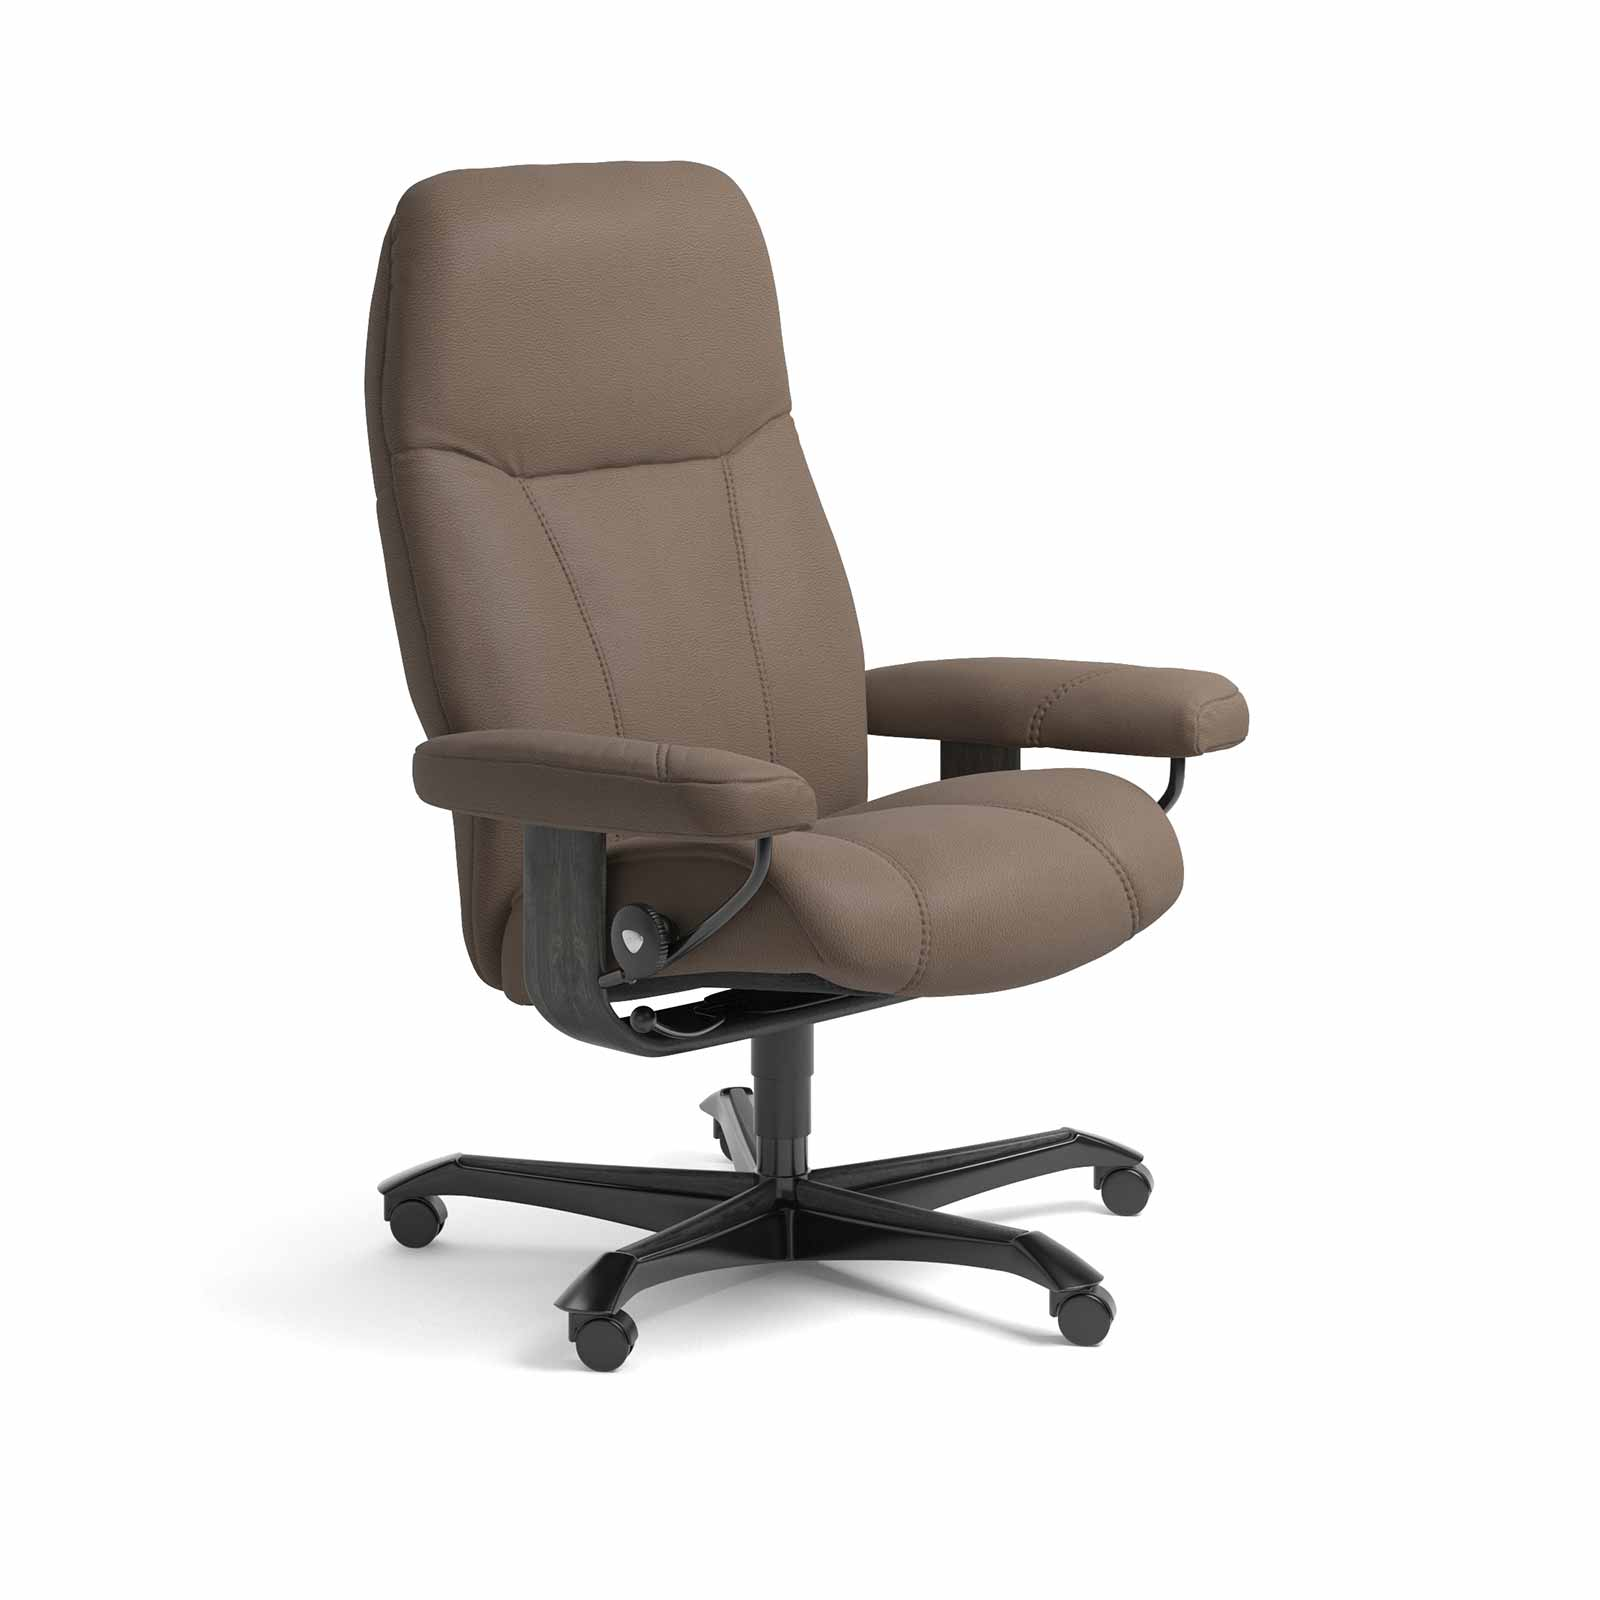 Stressless Sessel Montage Office Grau Interesting Braun Grau Kombination Web Und In Hoher